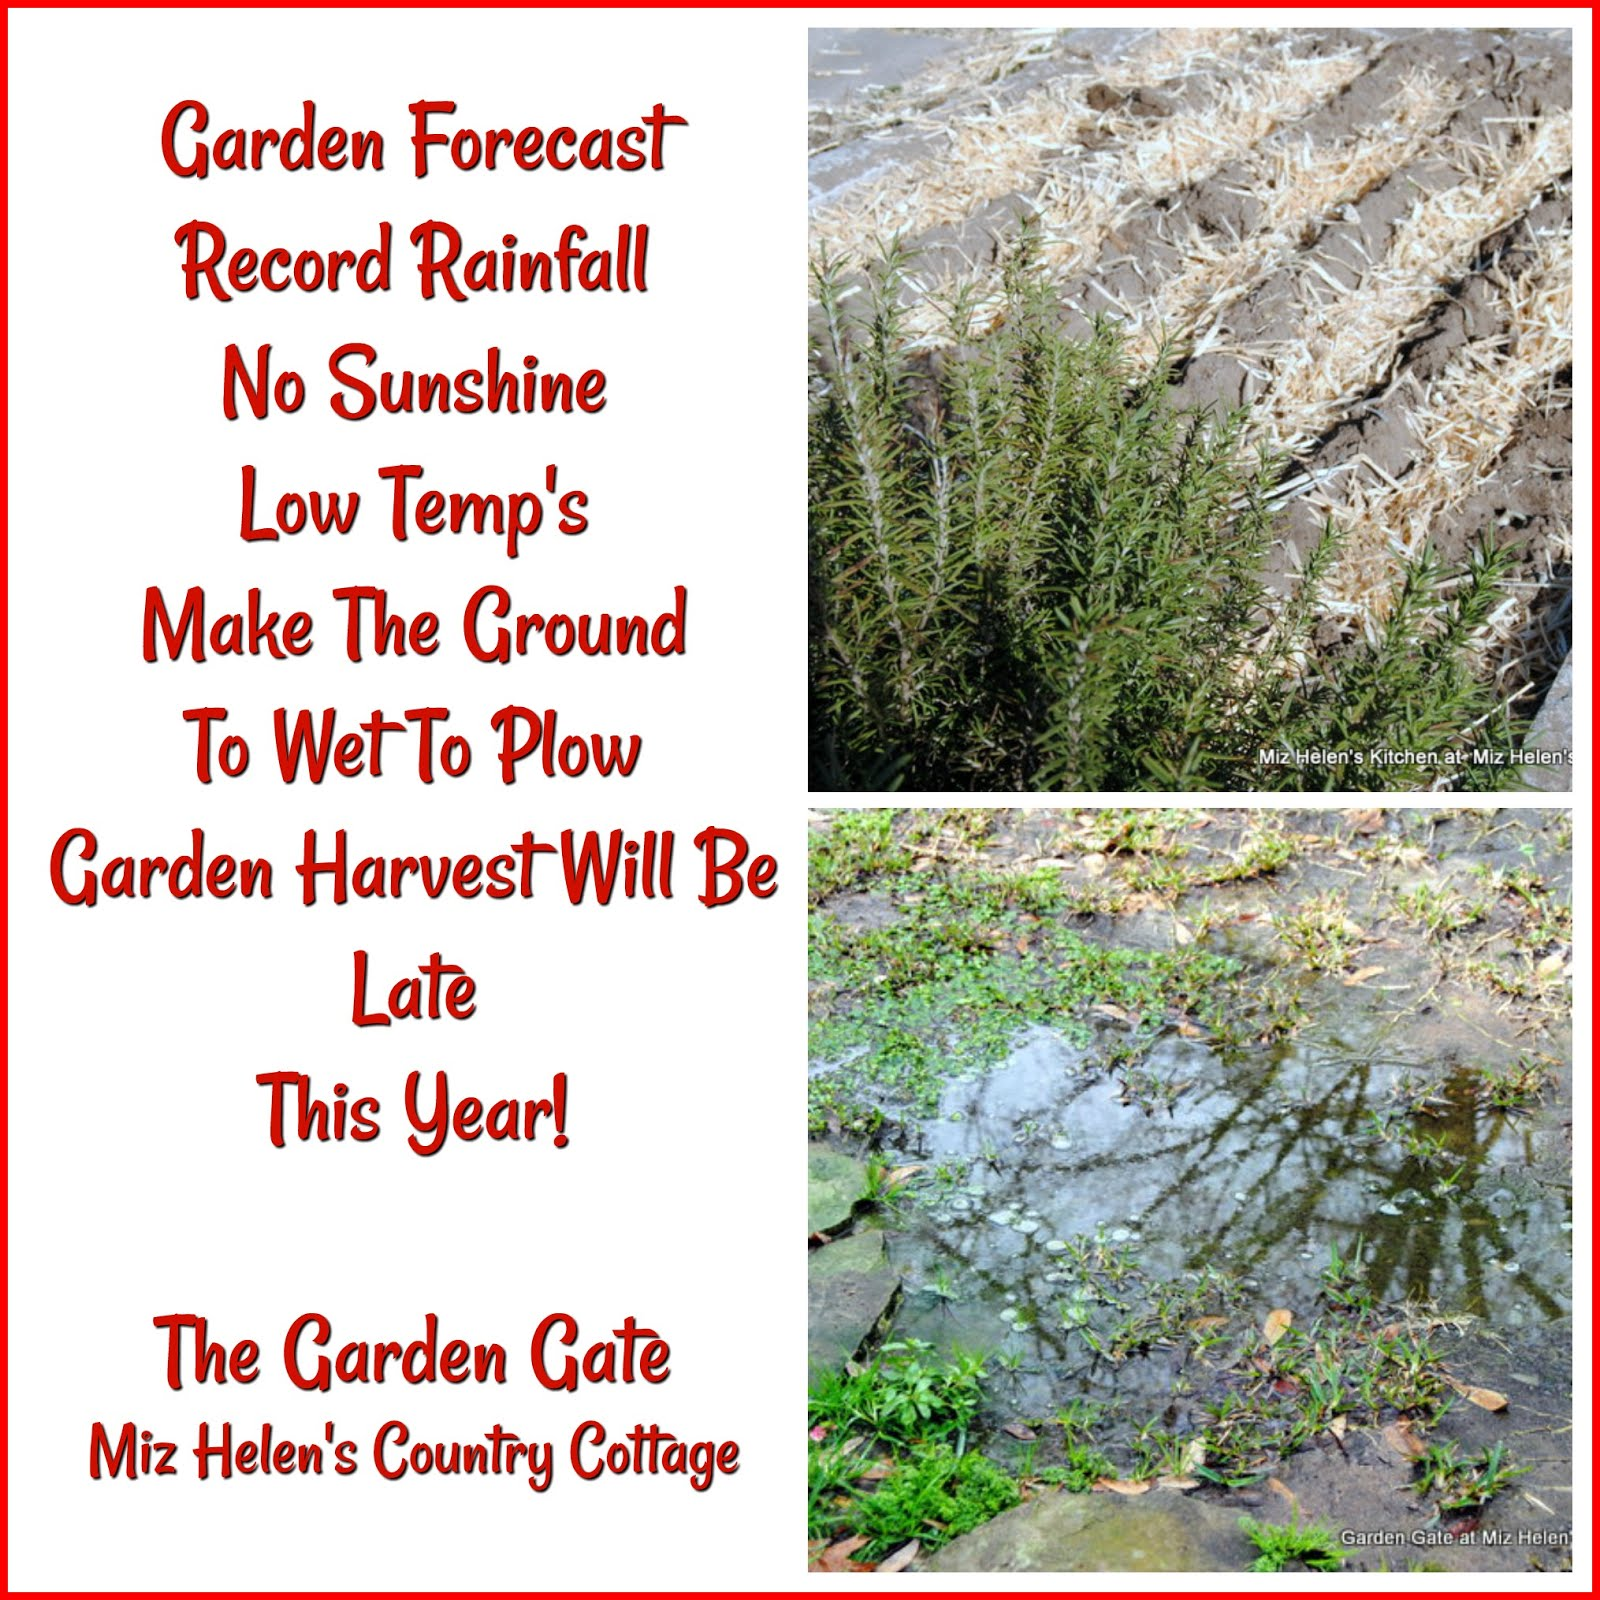 Garden Forecast: To Wet To Plow